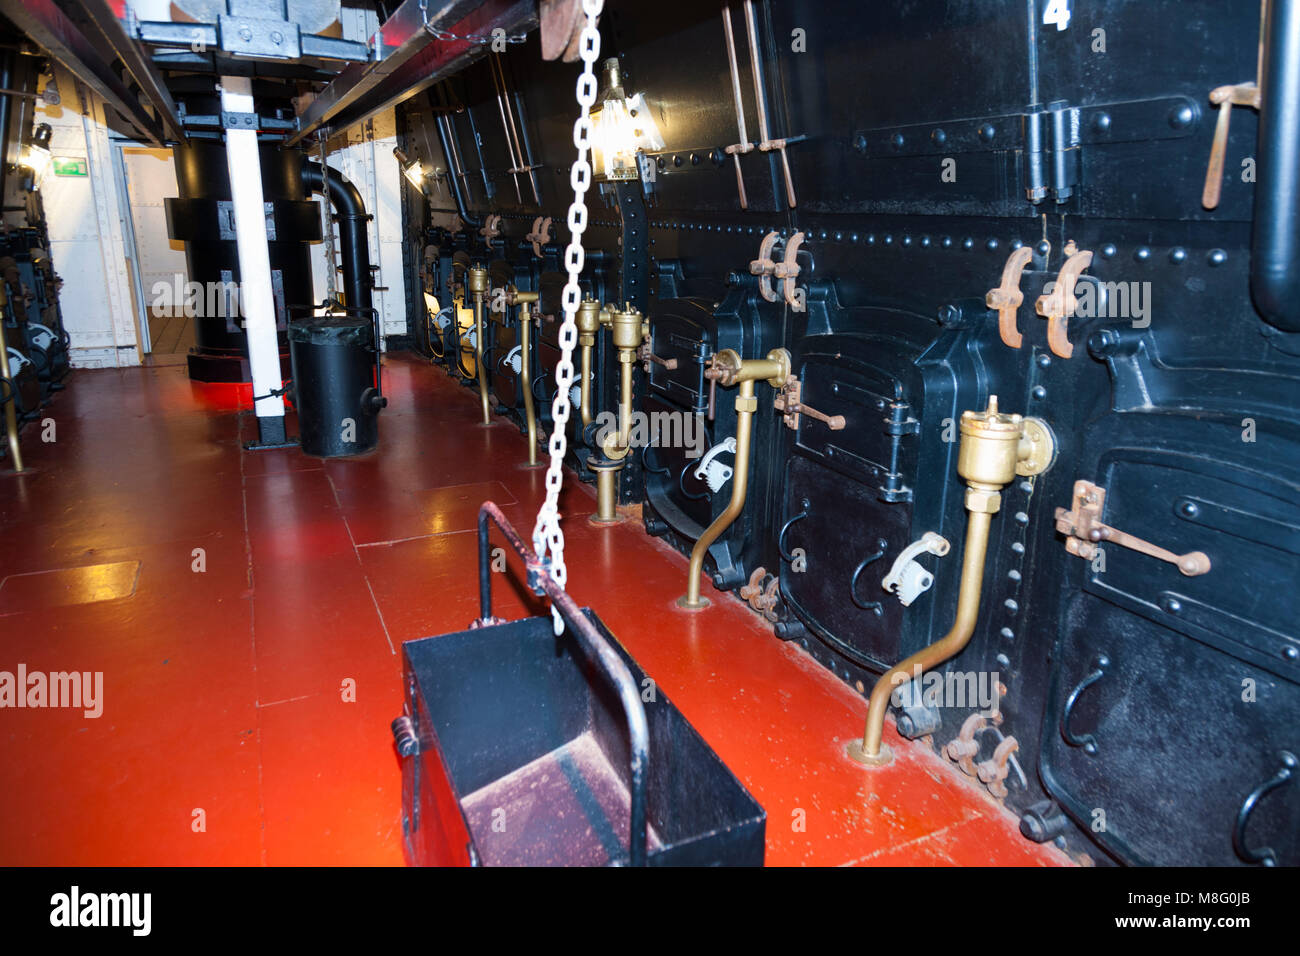 Water Boiler Furnaces Stock Photos & Water Boiler Furnaces Stock ...